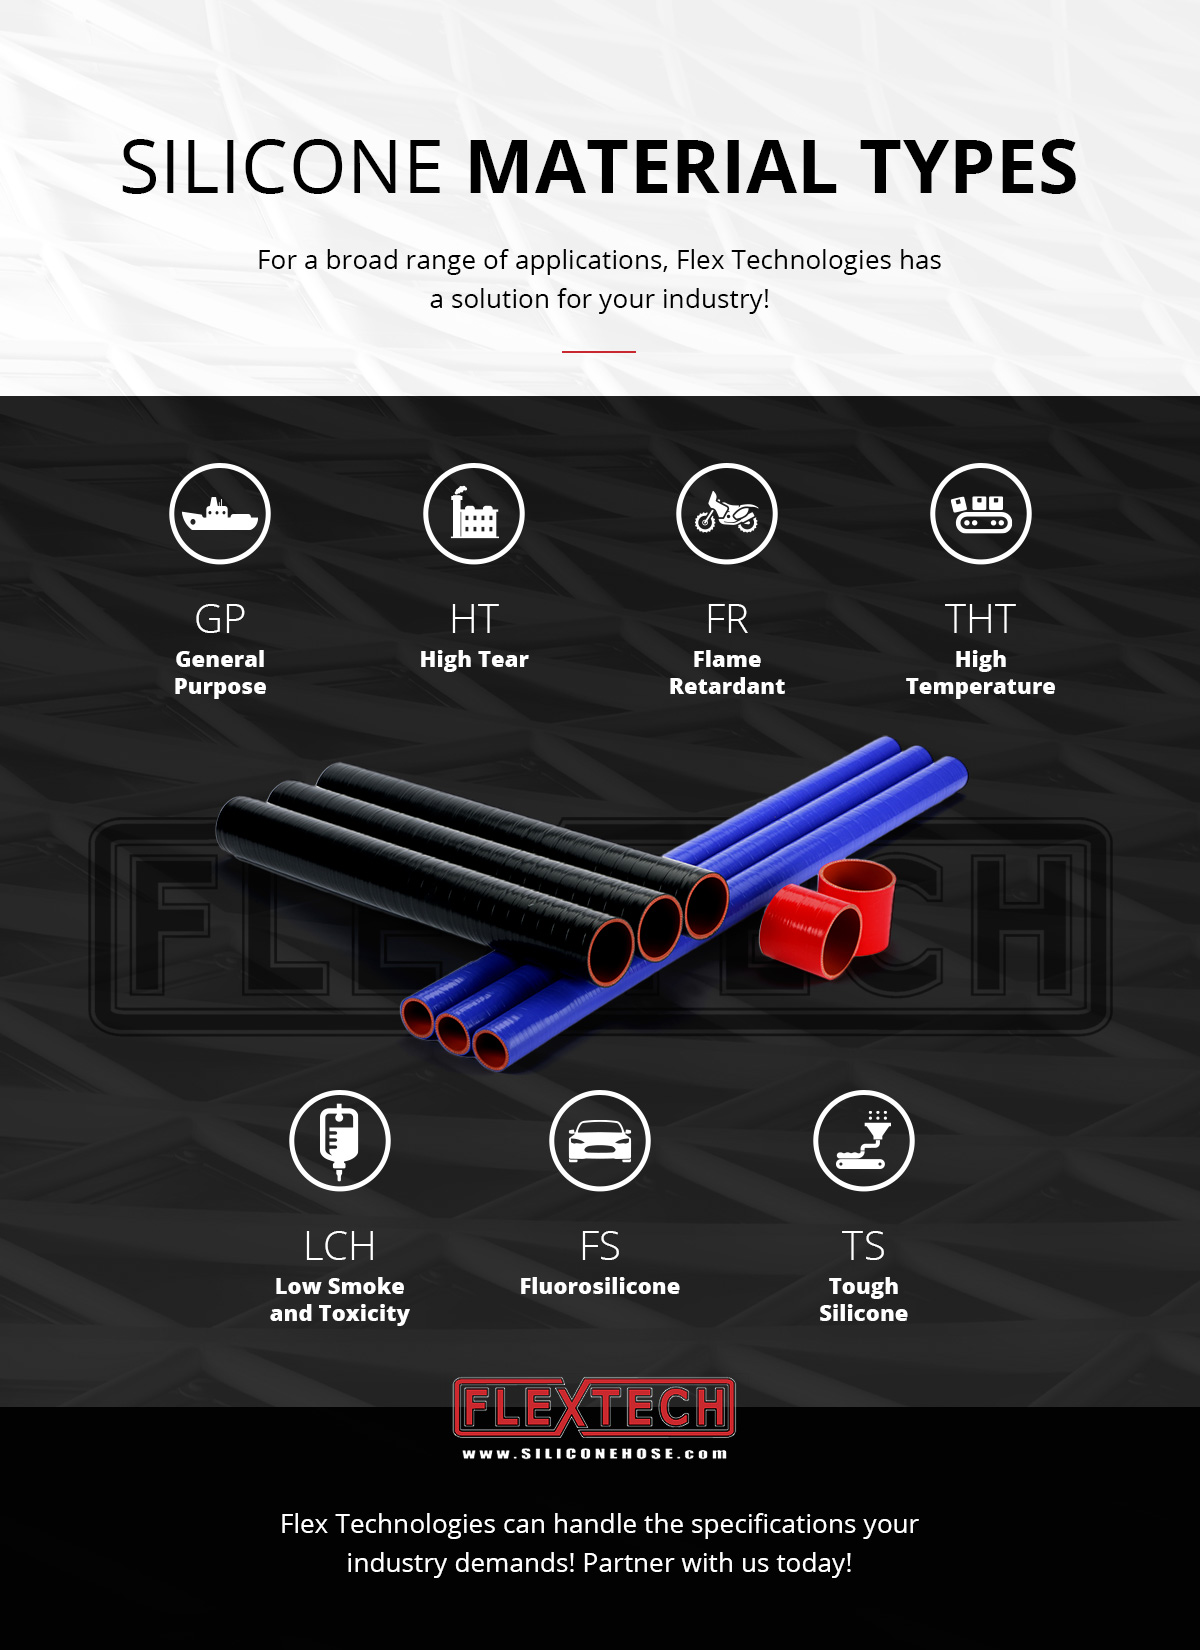 silicone-material-types-infographic.jpg